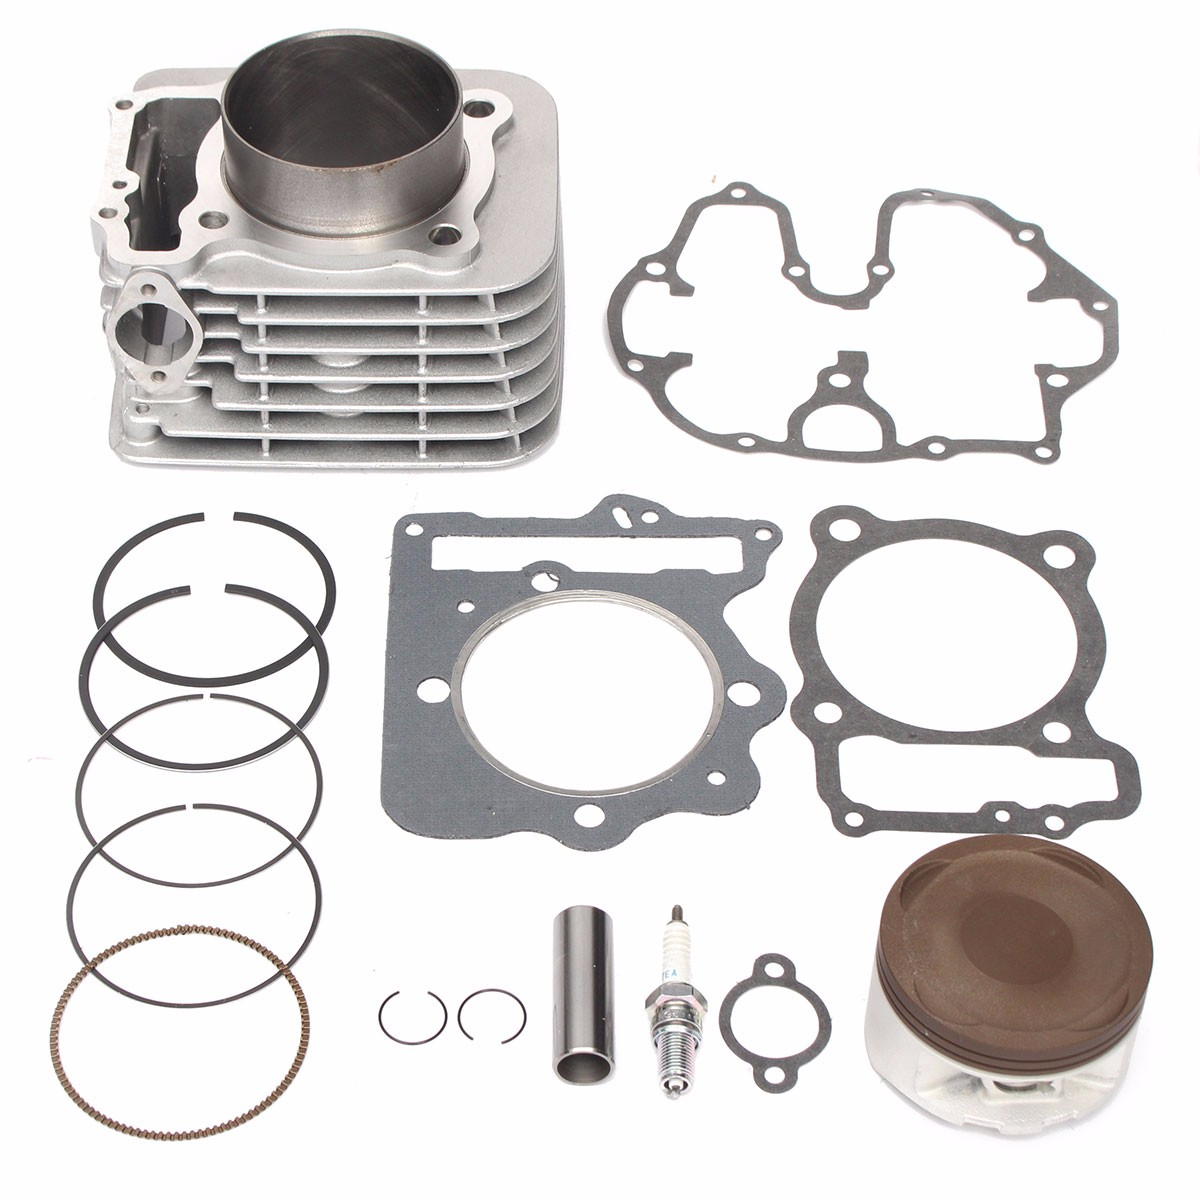 Cylinder Piston Gasket Top End Kit For Honda XR400R 1996 2004 TRX400EX 1999 2014 12100 KCY 670 13101 KCY 670|Block & Parts| |  - title=